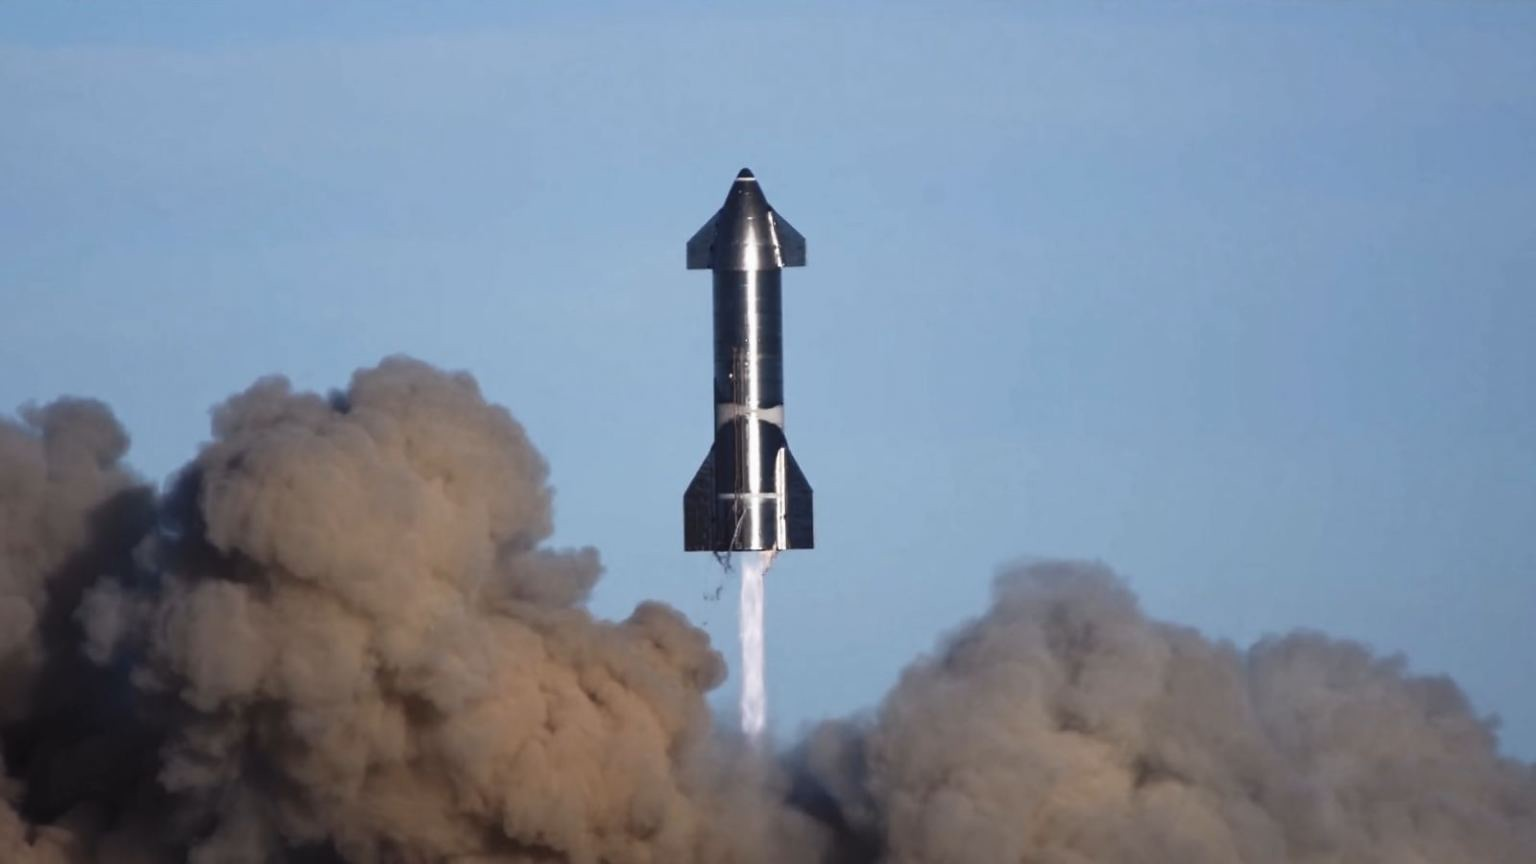 A dark-colored rocket lifts off, with dark, billowing clouds below.